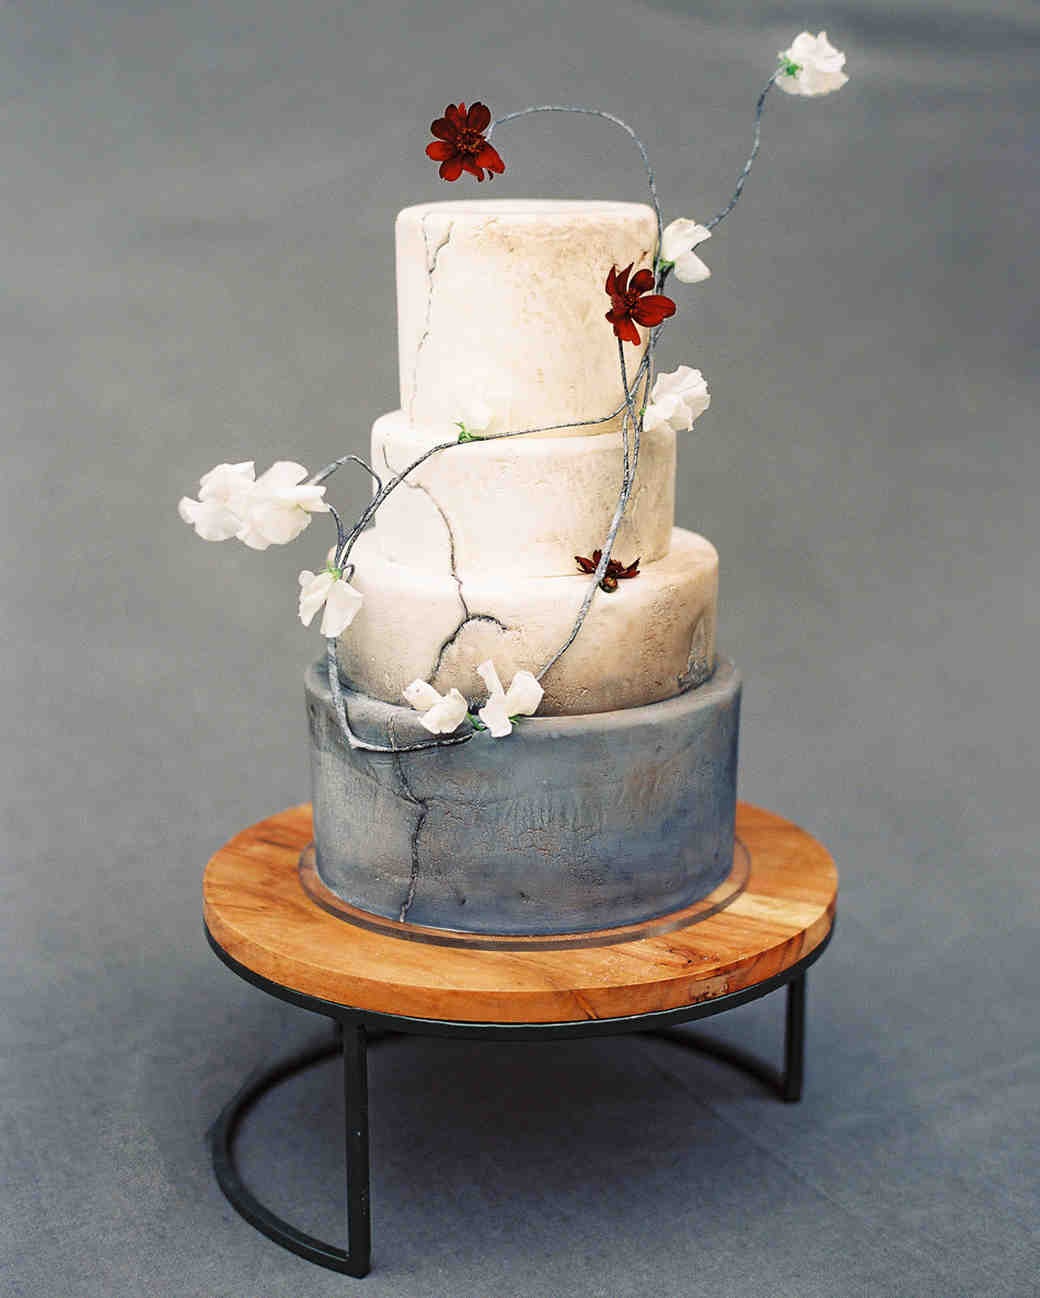 four tiered natural textured wedding cake with white and red floral accents